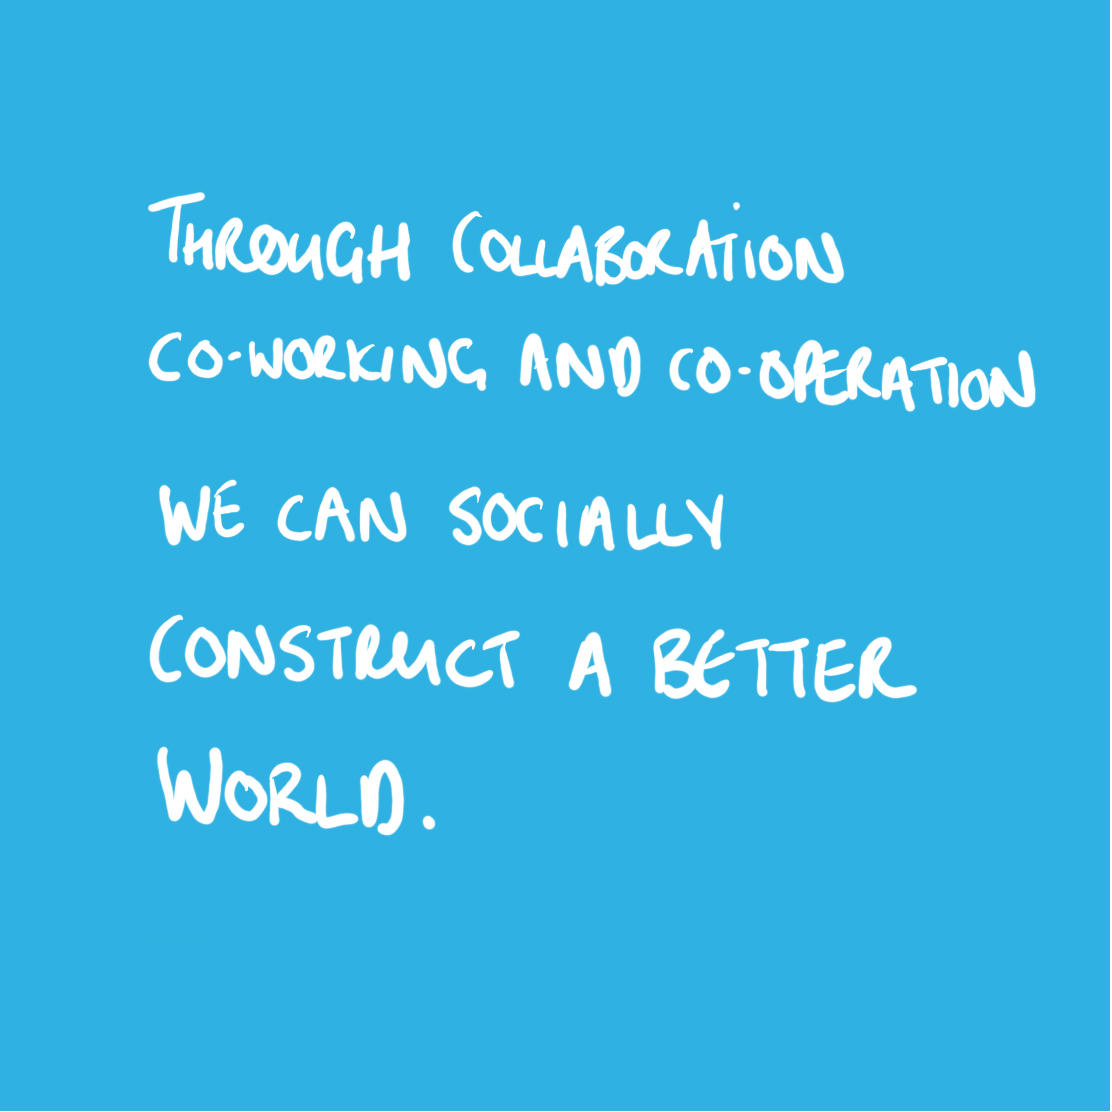 Through collaboration co-working and co-operation we can socially construct a better world. Our Mission - Attitudes and Beliefs. LabPlay Studio | A design thinking and research company - Lab Play Studio